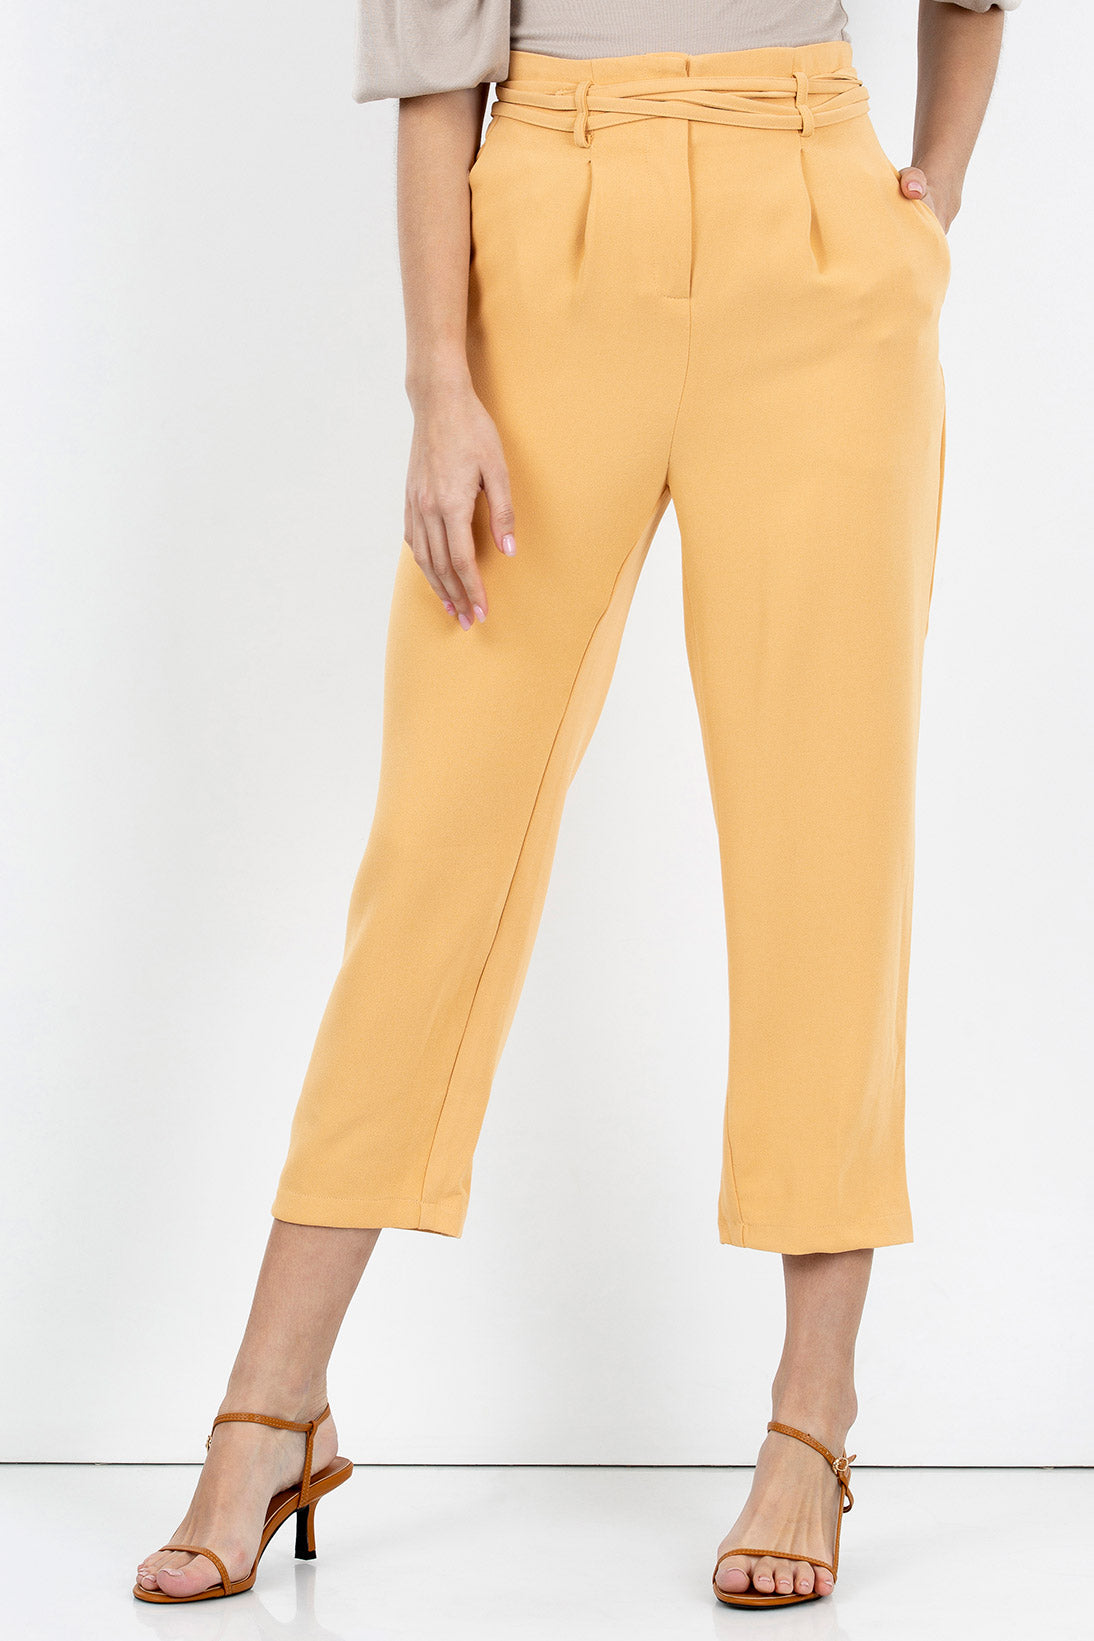 Peach perfect pants